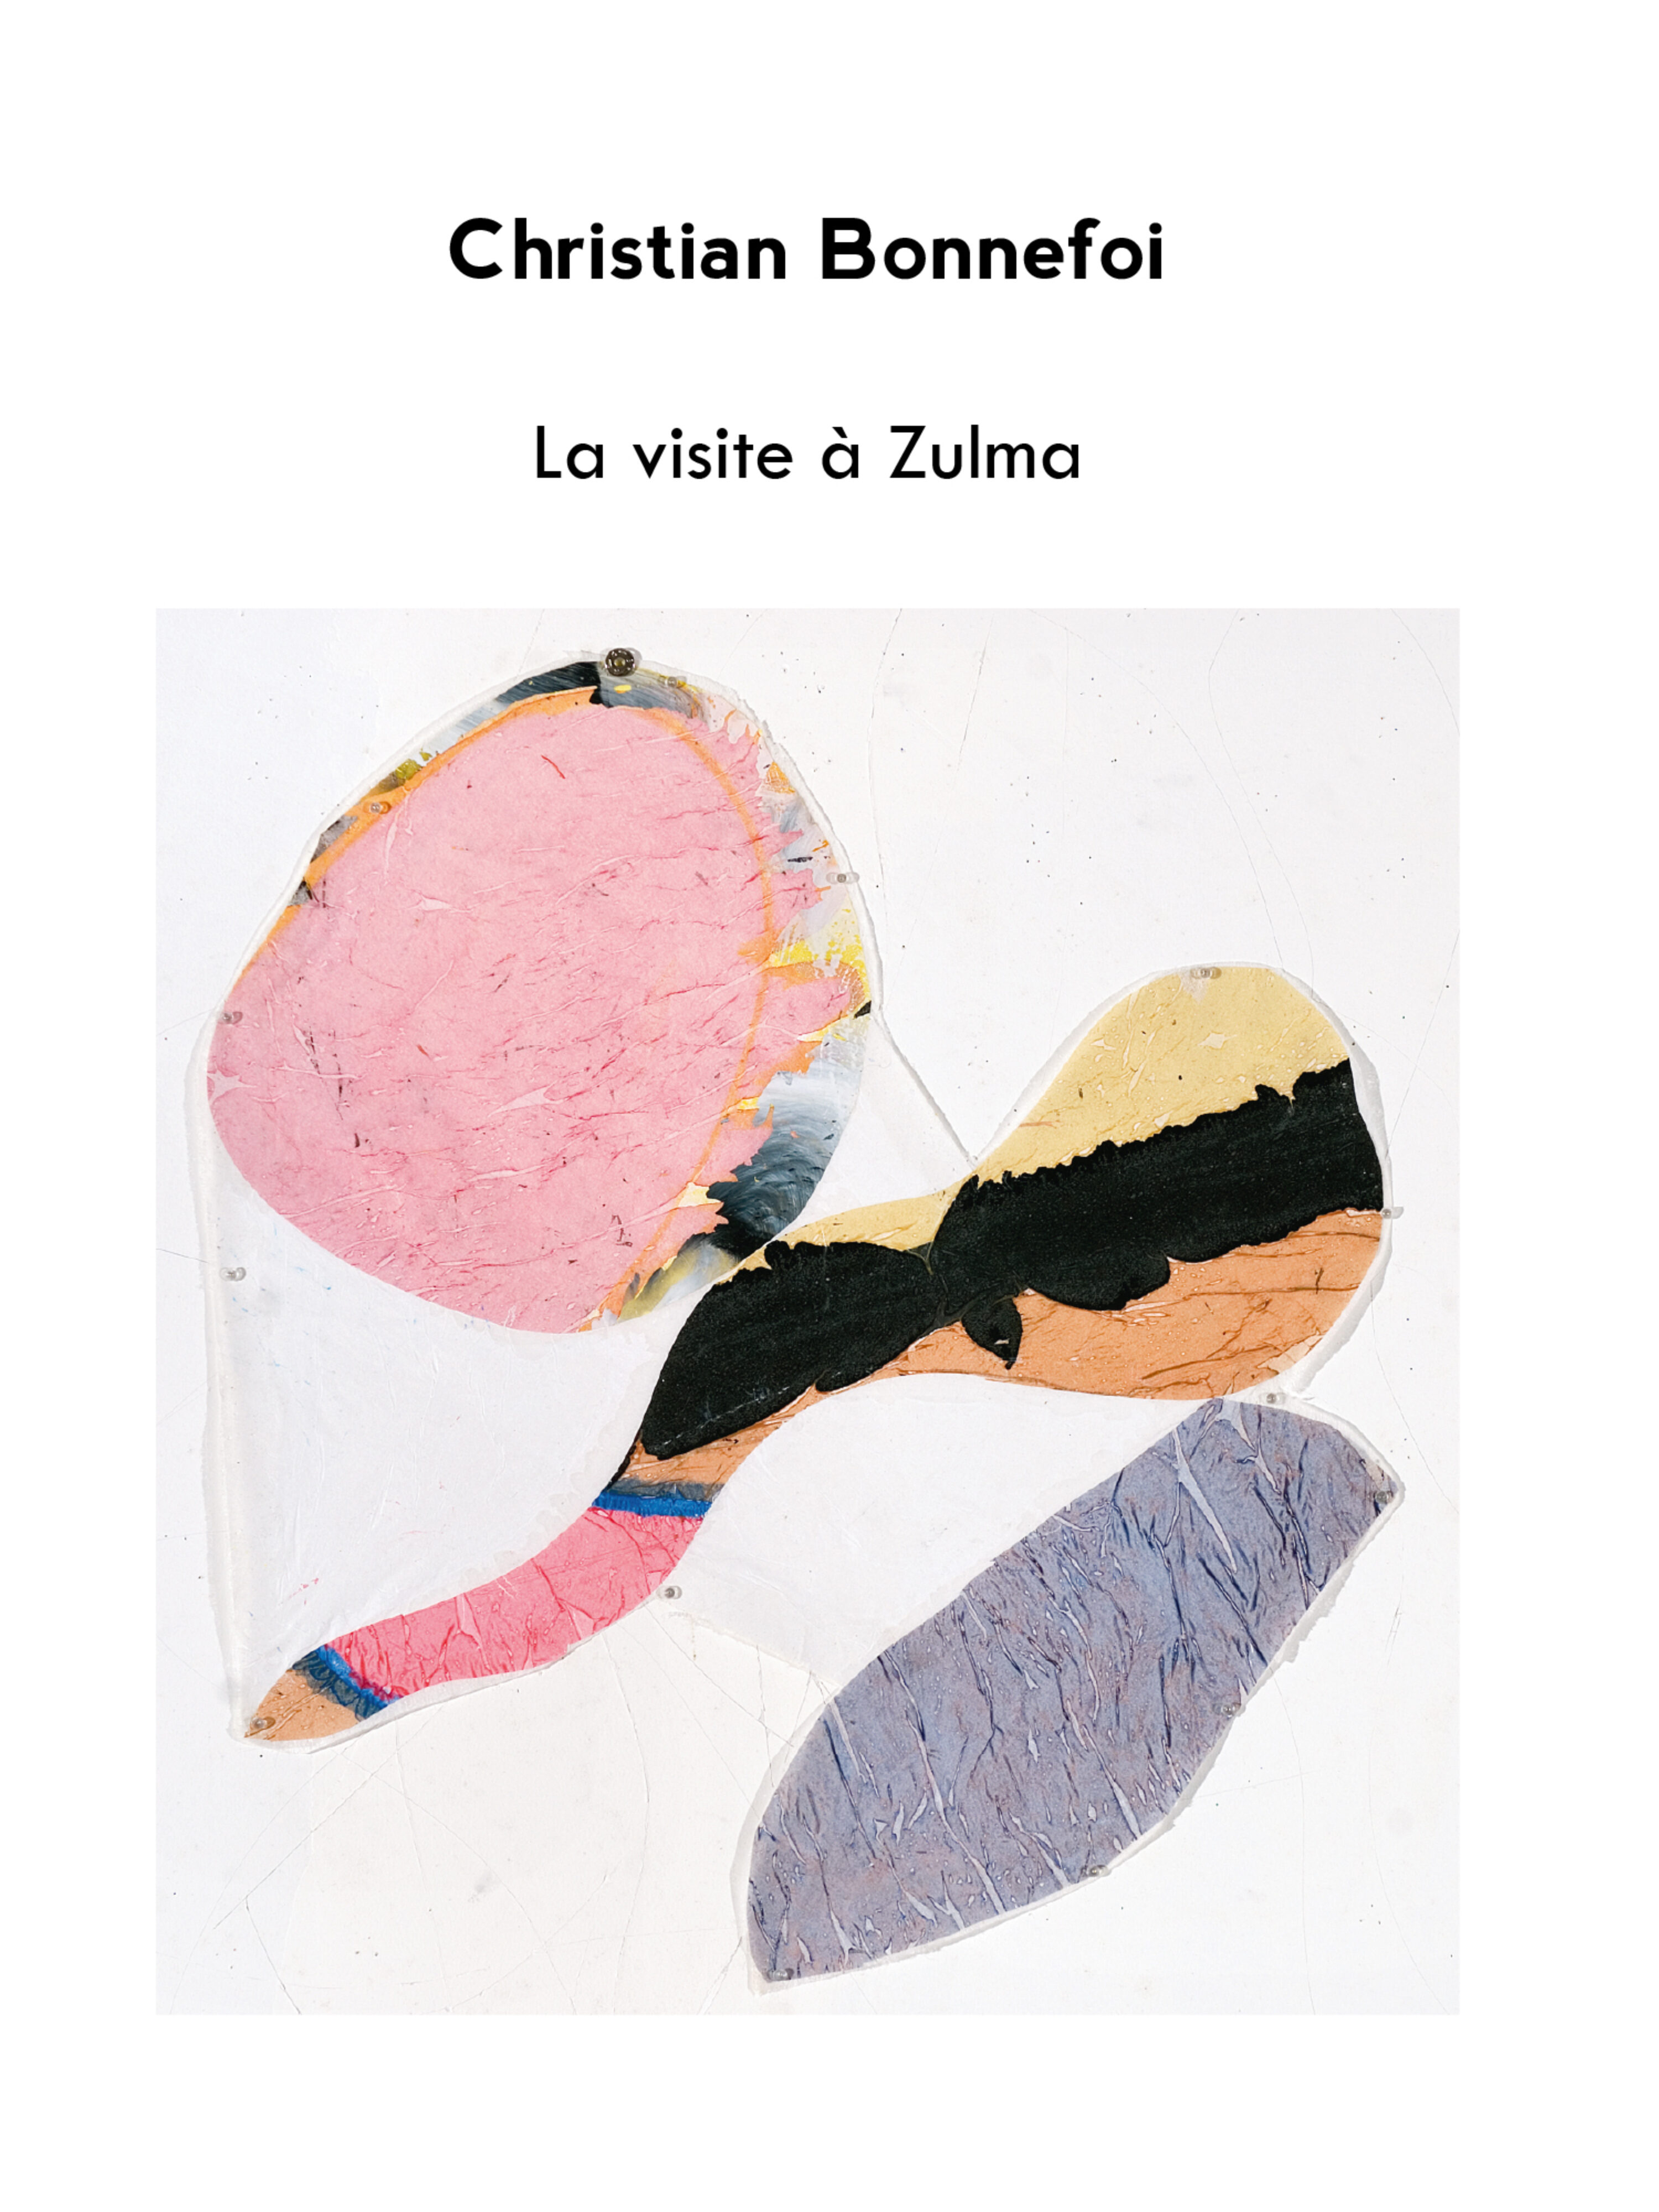 Image of the front cover of La visite à Zulma